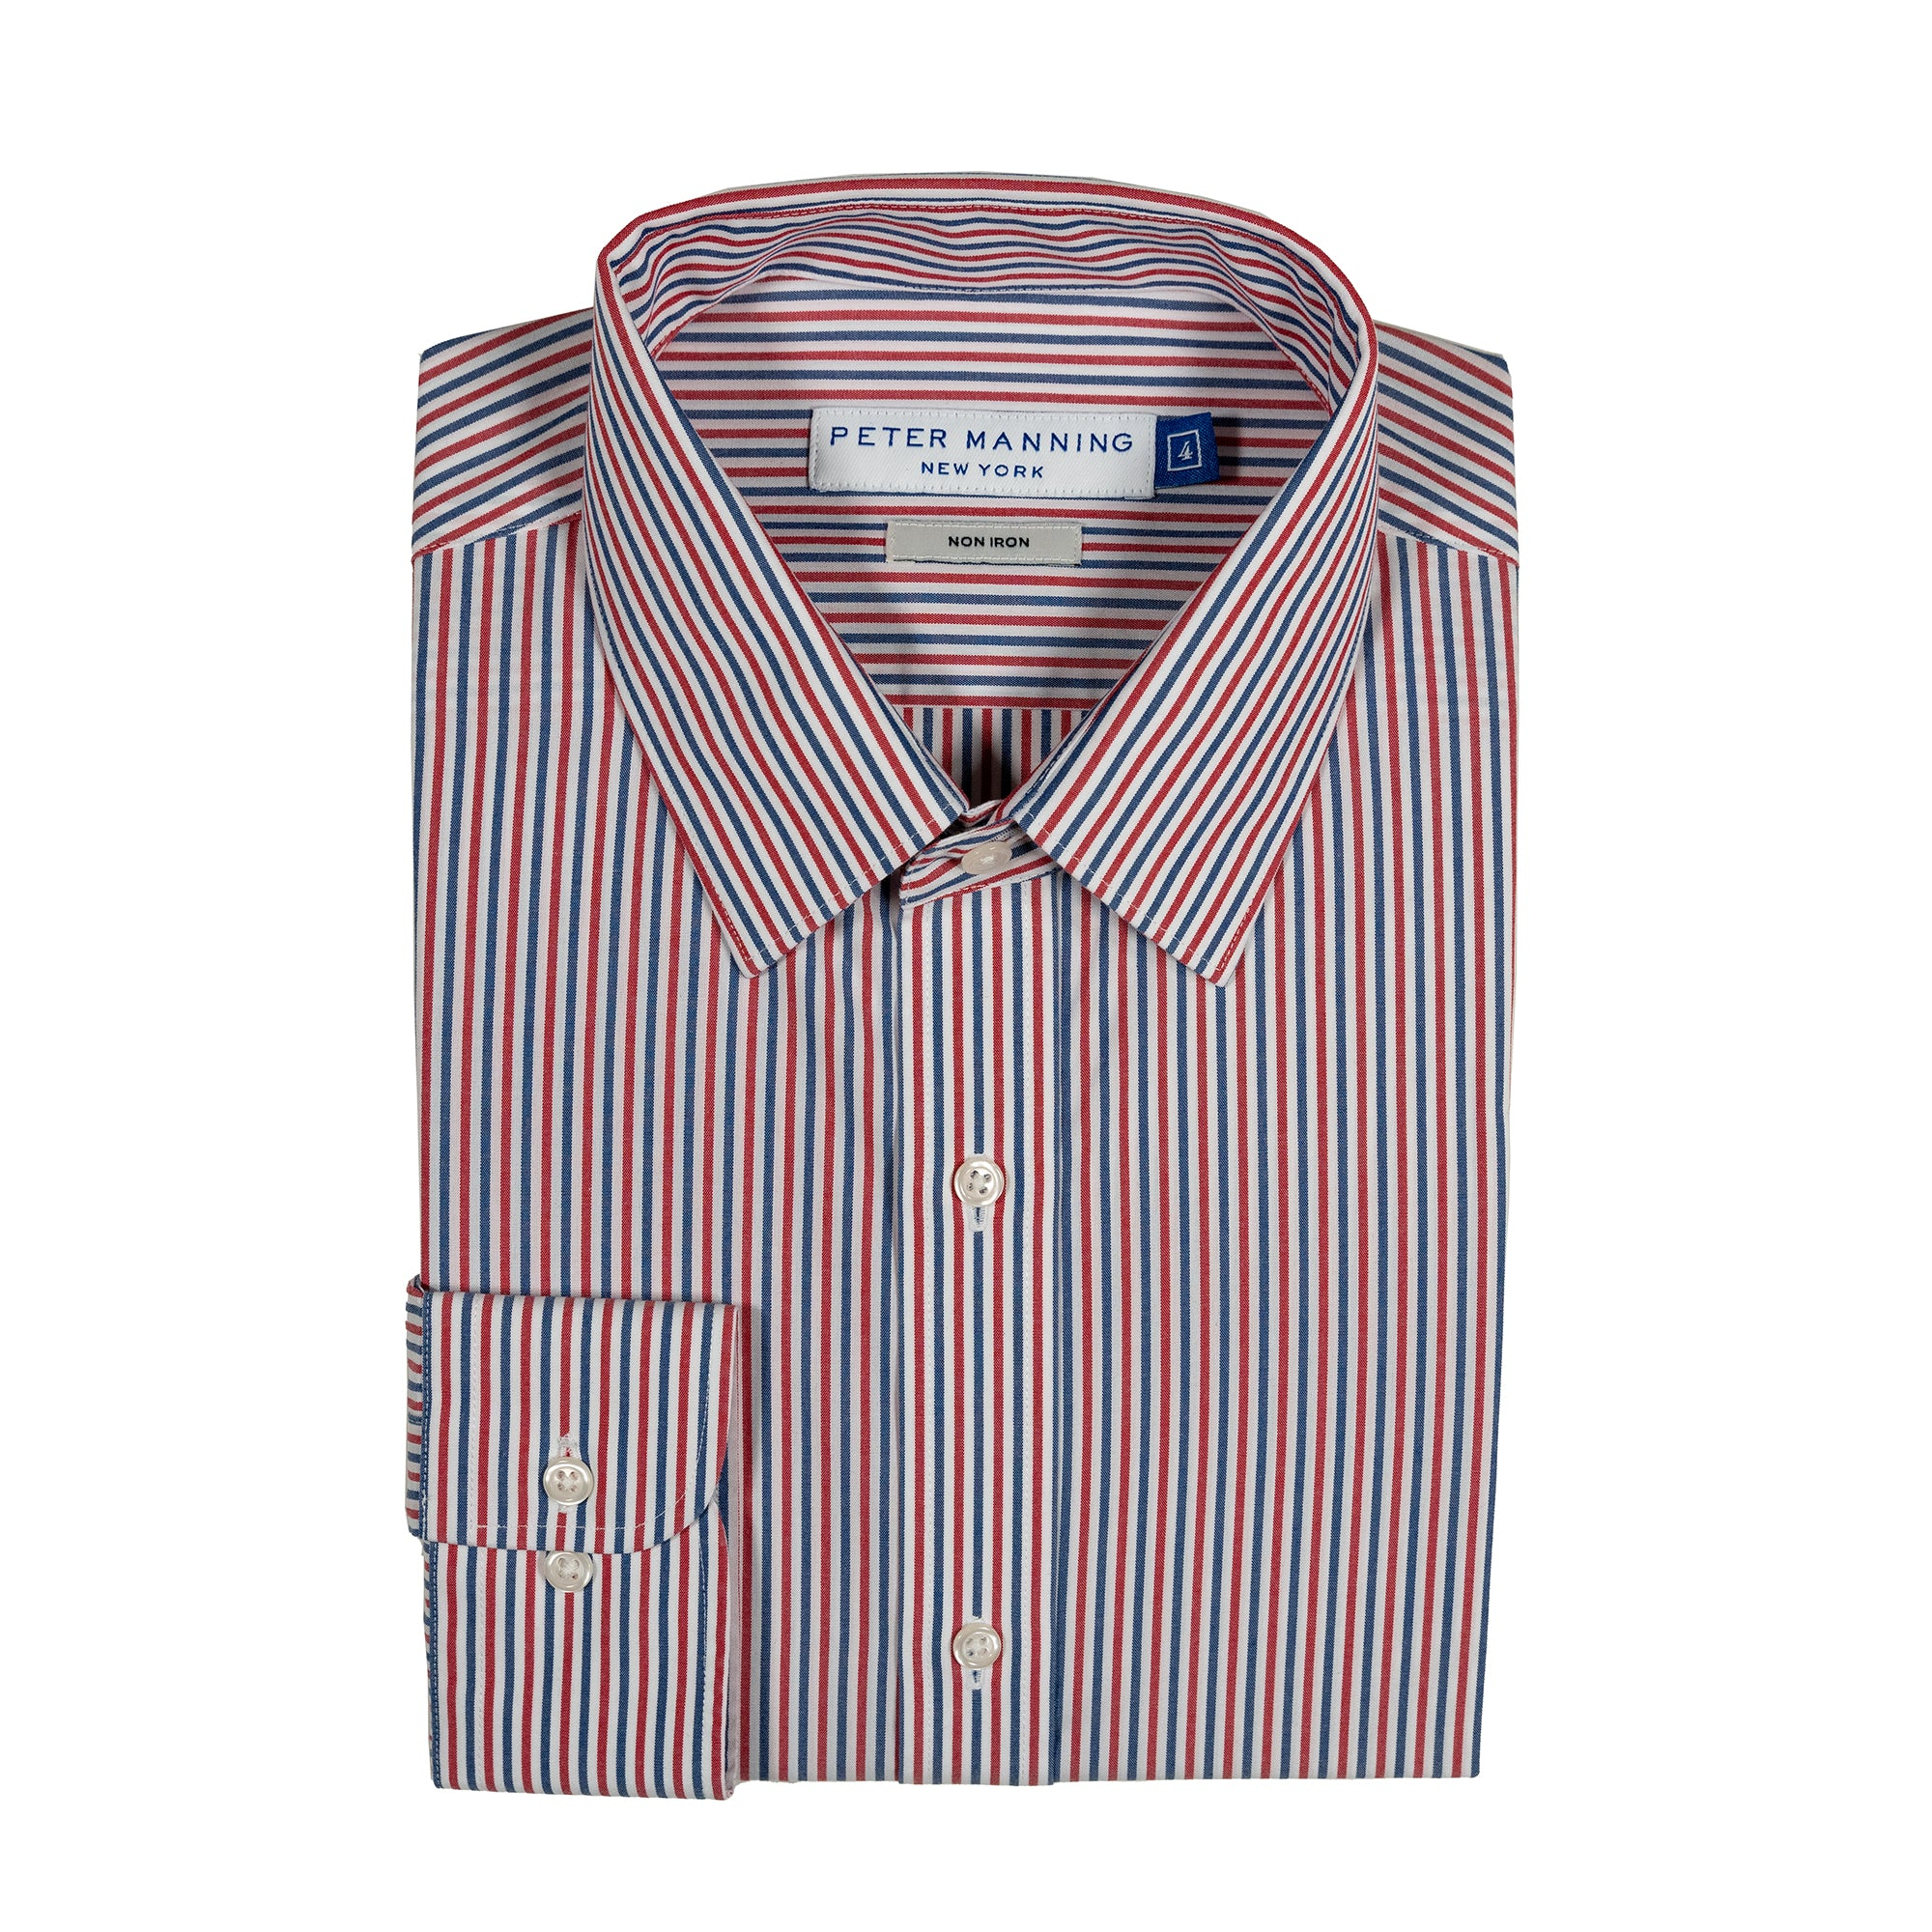 Easy Care Dress Shirt Standard Fit - Red Navy Stripe